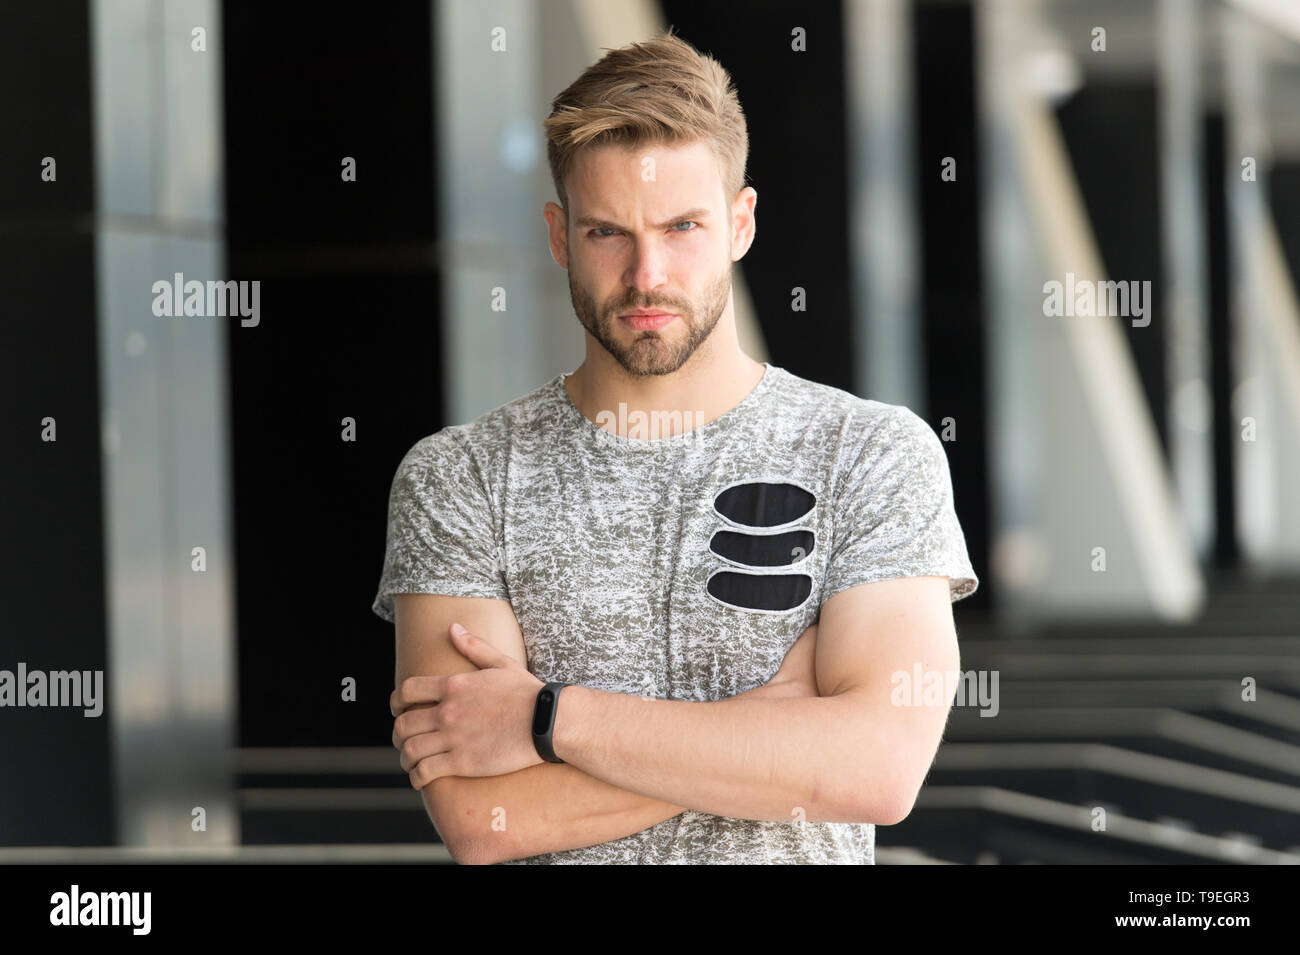 Man bristle serious face muscular shoulders, urban background, defocused. Man beard unshaven guy looks handsome and cool. Metrosexual concept. Guy bea - Stock Image